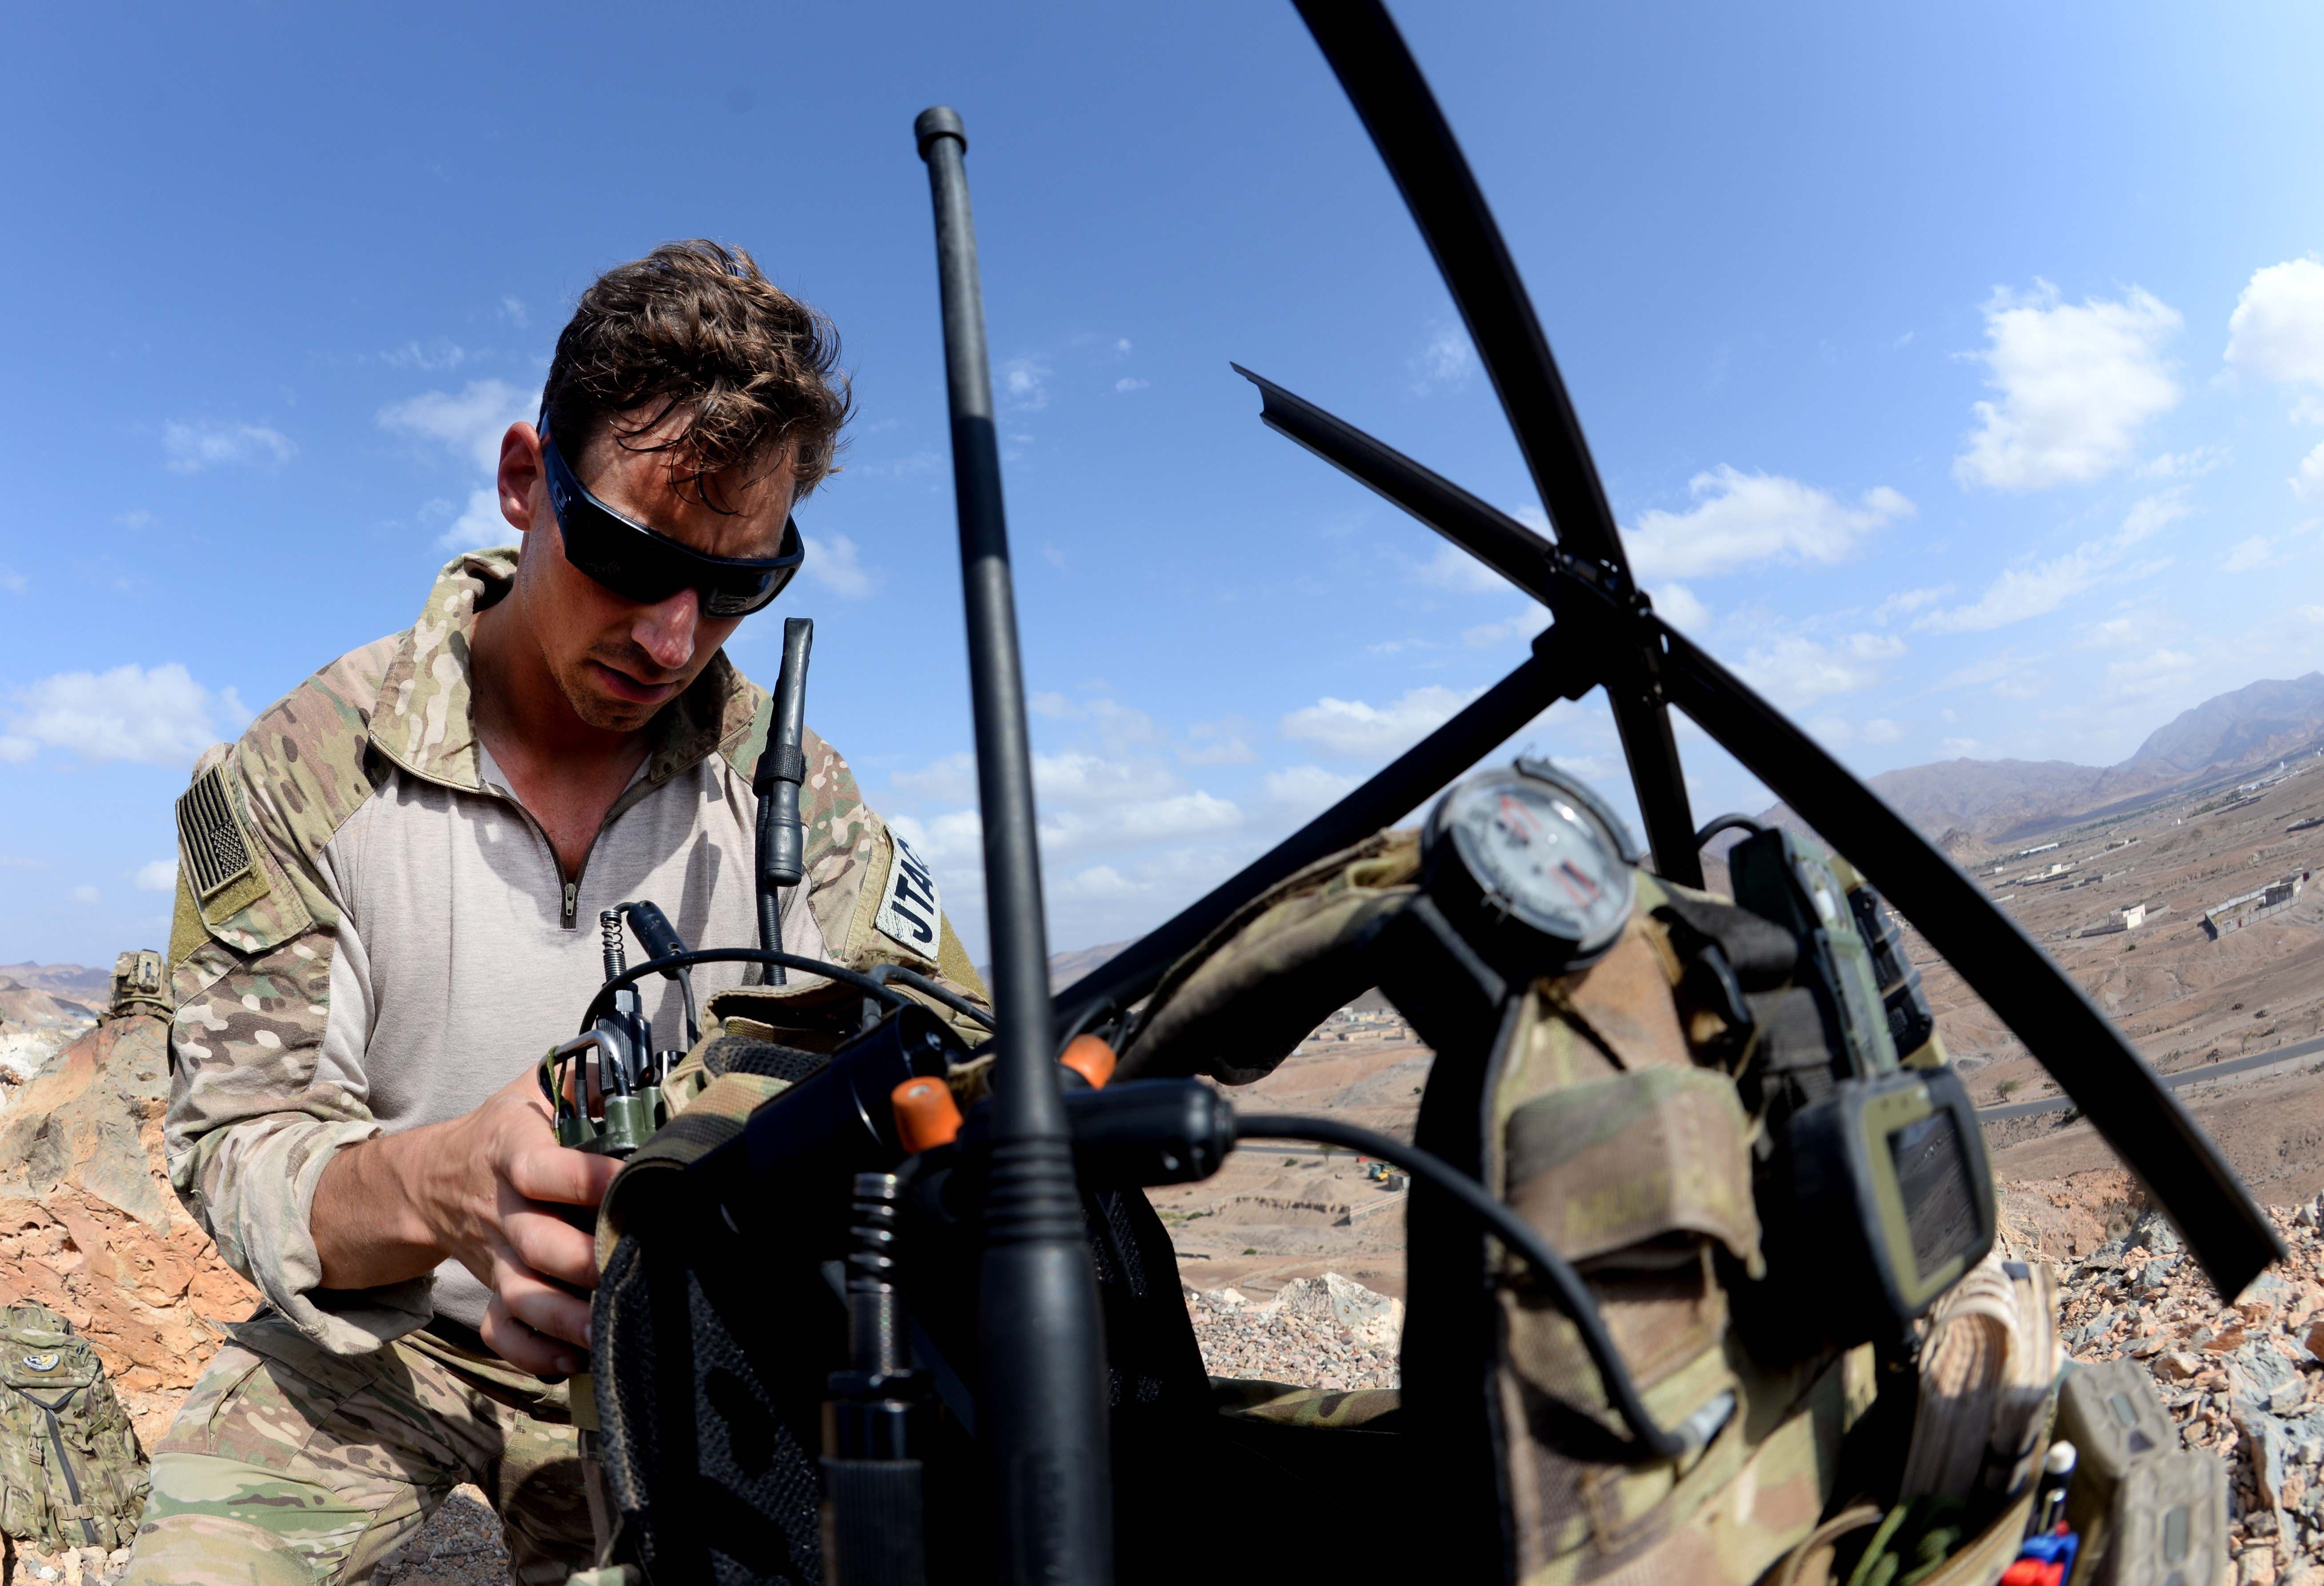 U.S. Air Force Staff Sgt. Corey Johnson, Tactical Air Control Party member, adjusts his satellite communications during a tactical exercise with the French Air Force Feb. 24, 2016, in Djibouti. Although aviators across the globe speak English, accents and distinctions from both the English-speaking or French-speaking personnel can create challenges under already stressful situations, and the exercise helped both forces become more familiar with each other's accents. (U.S. Air Force photo by Staff Sgt. Kate Thornton)